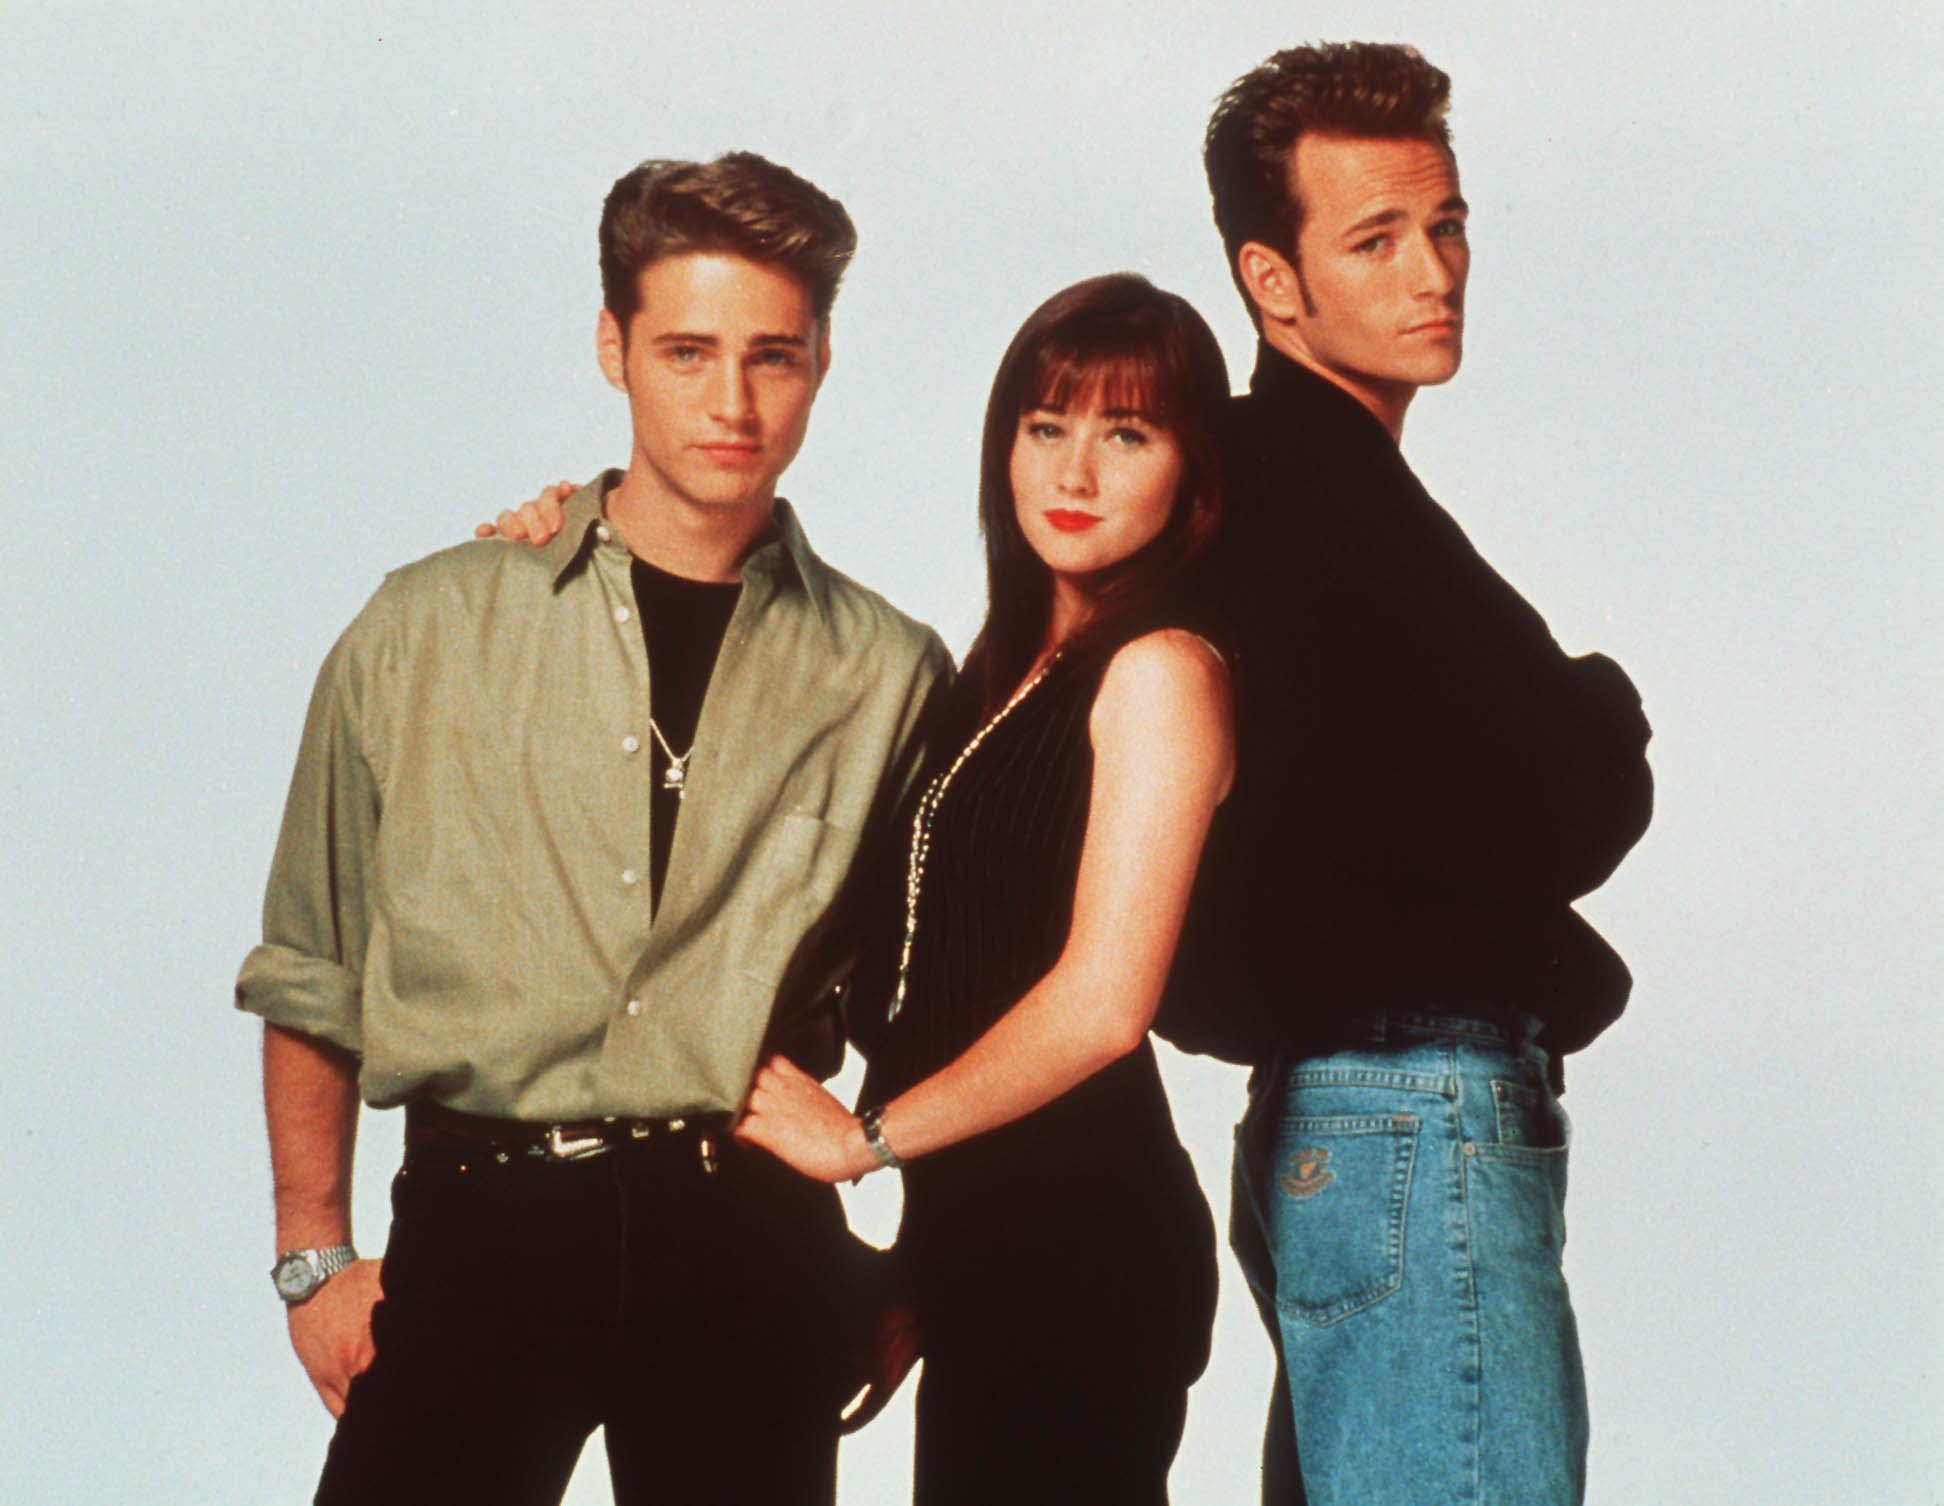 Television programme : BEVERLEY HILLS 90210 Saturday 14th April, 11.05am. This mornings rendezvous with the beautiful students of Beverley Hills High, starring JASON PRIESTLY, ShannenDOHERTY and LUKE PERRY. Licenced by: Channel 5 Broacasting. Contact Channel 5 Stills: 0171 550 5583/5509/5544. Free for editorial press and listings use in connection with the current broadcast of Channel 5 programmes only. This image may only be reproduced with the prior written consent of Channel 5. All rights reserved. Not for any form of advertising, internet use or in connection with the sale of any product.Brenda (ShannenDocherty) lies to her parents about seeing Dylan (Luke Perry) and Brandon (Jason Priestley) challenges a friend. Free picture publicity for Channel 5 programmes only! Channel 5